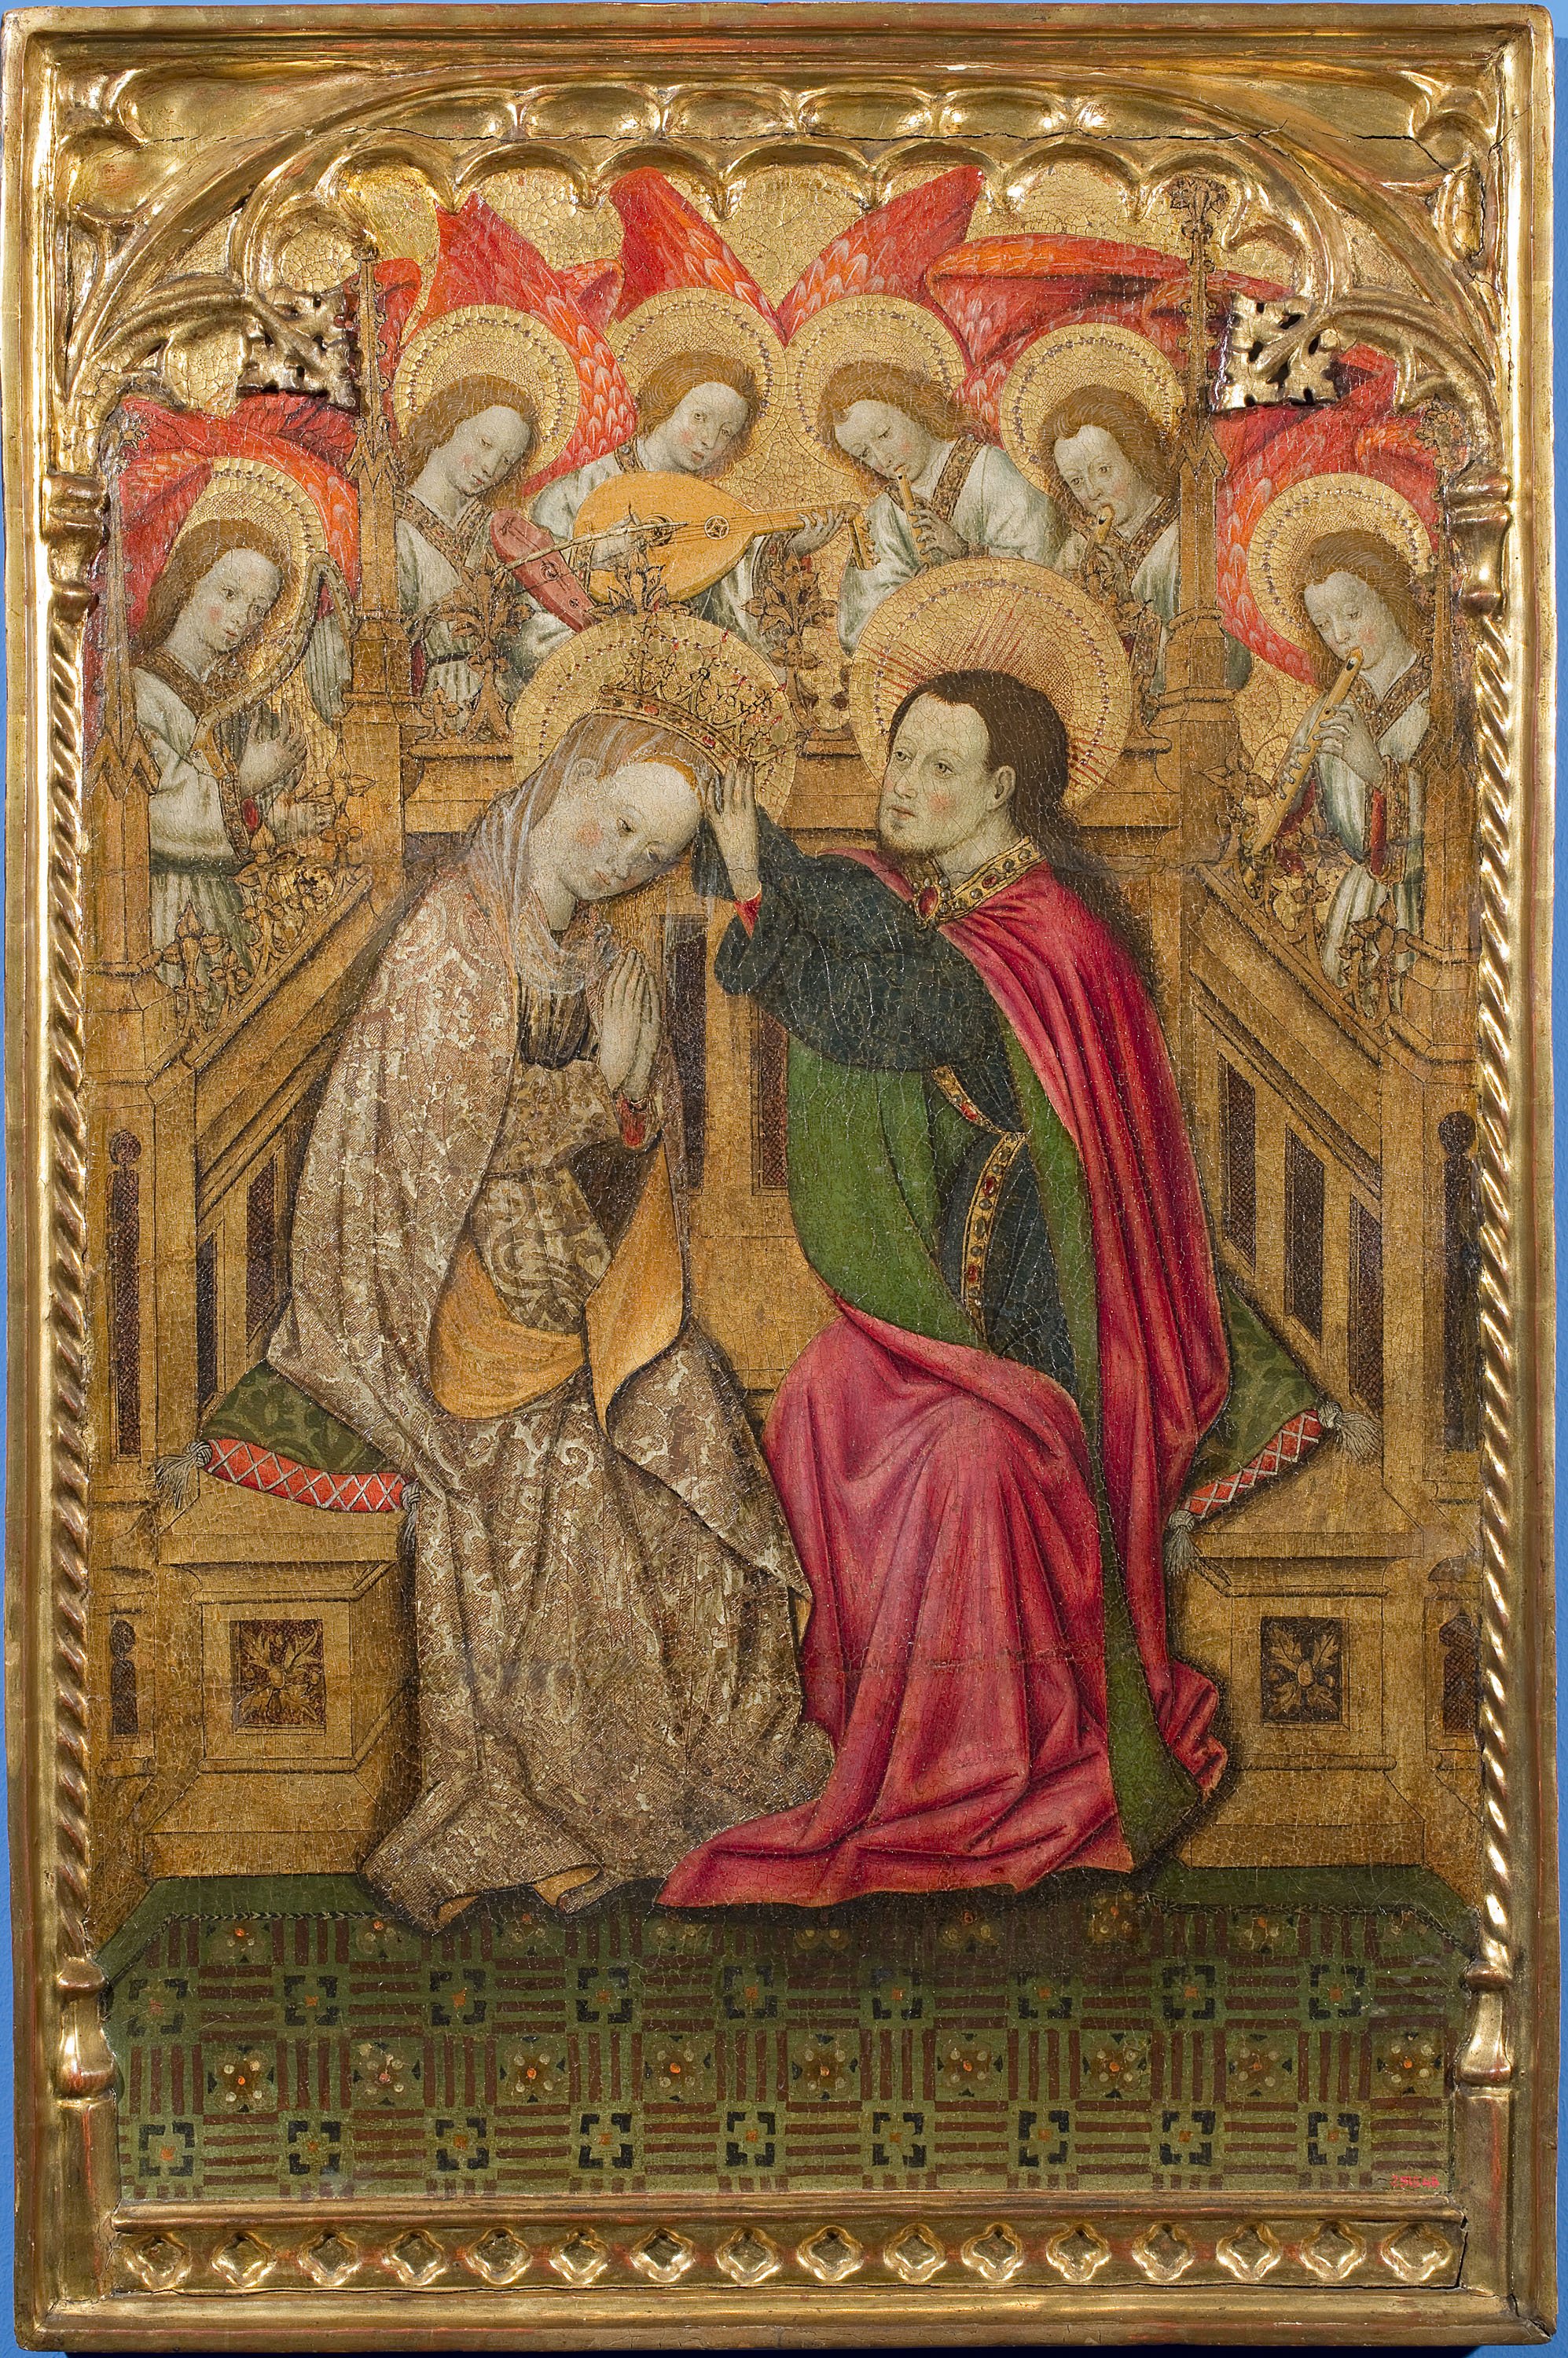 Bernat Martorell - Coronation of the Virgin - Circa 1445-1452